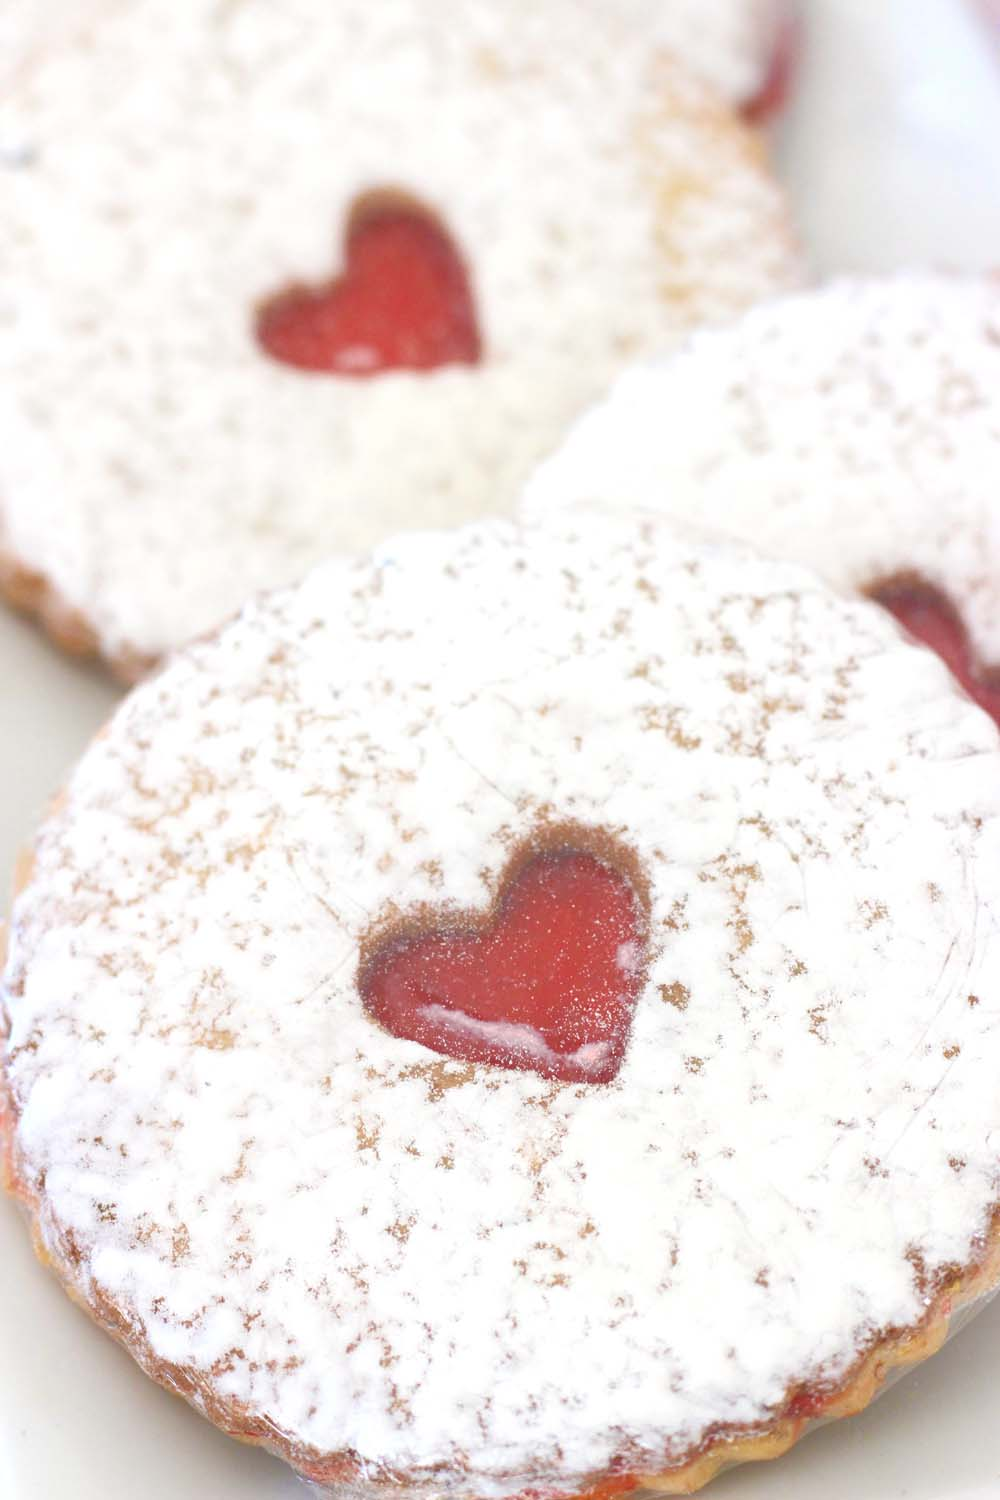 Linzer Tart cookie for a wedding dessert table from Cafe Pierrot in Sparta NJ